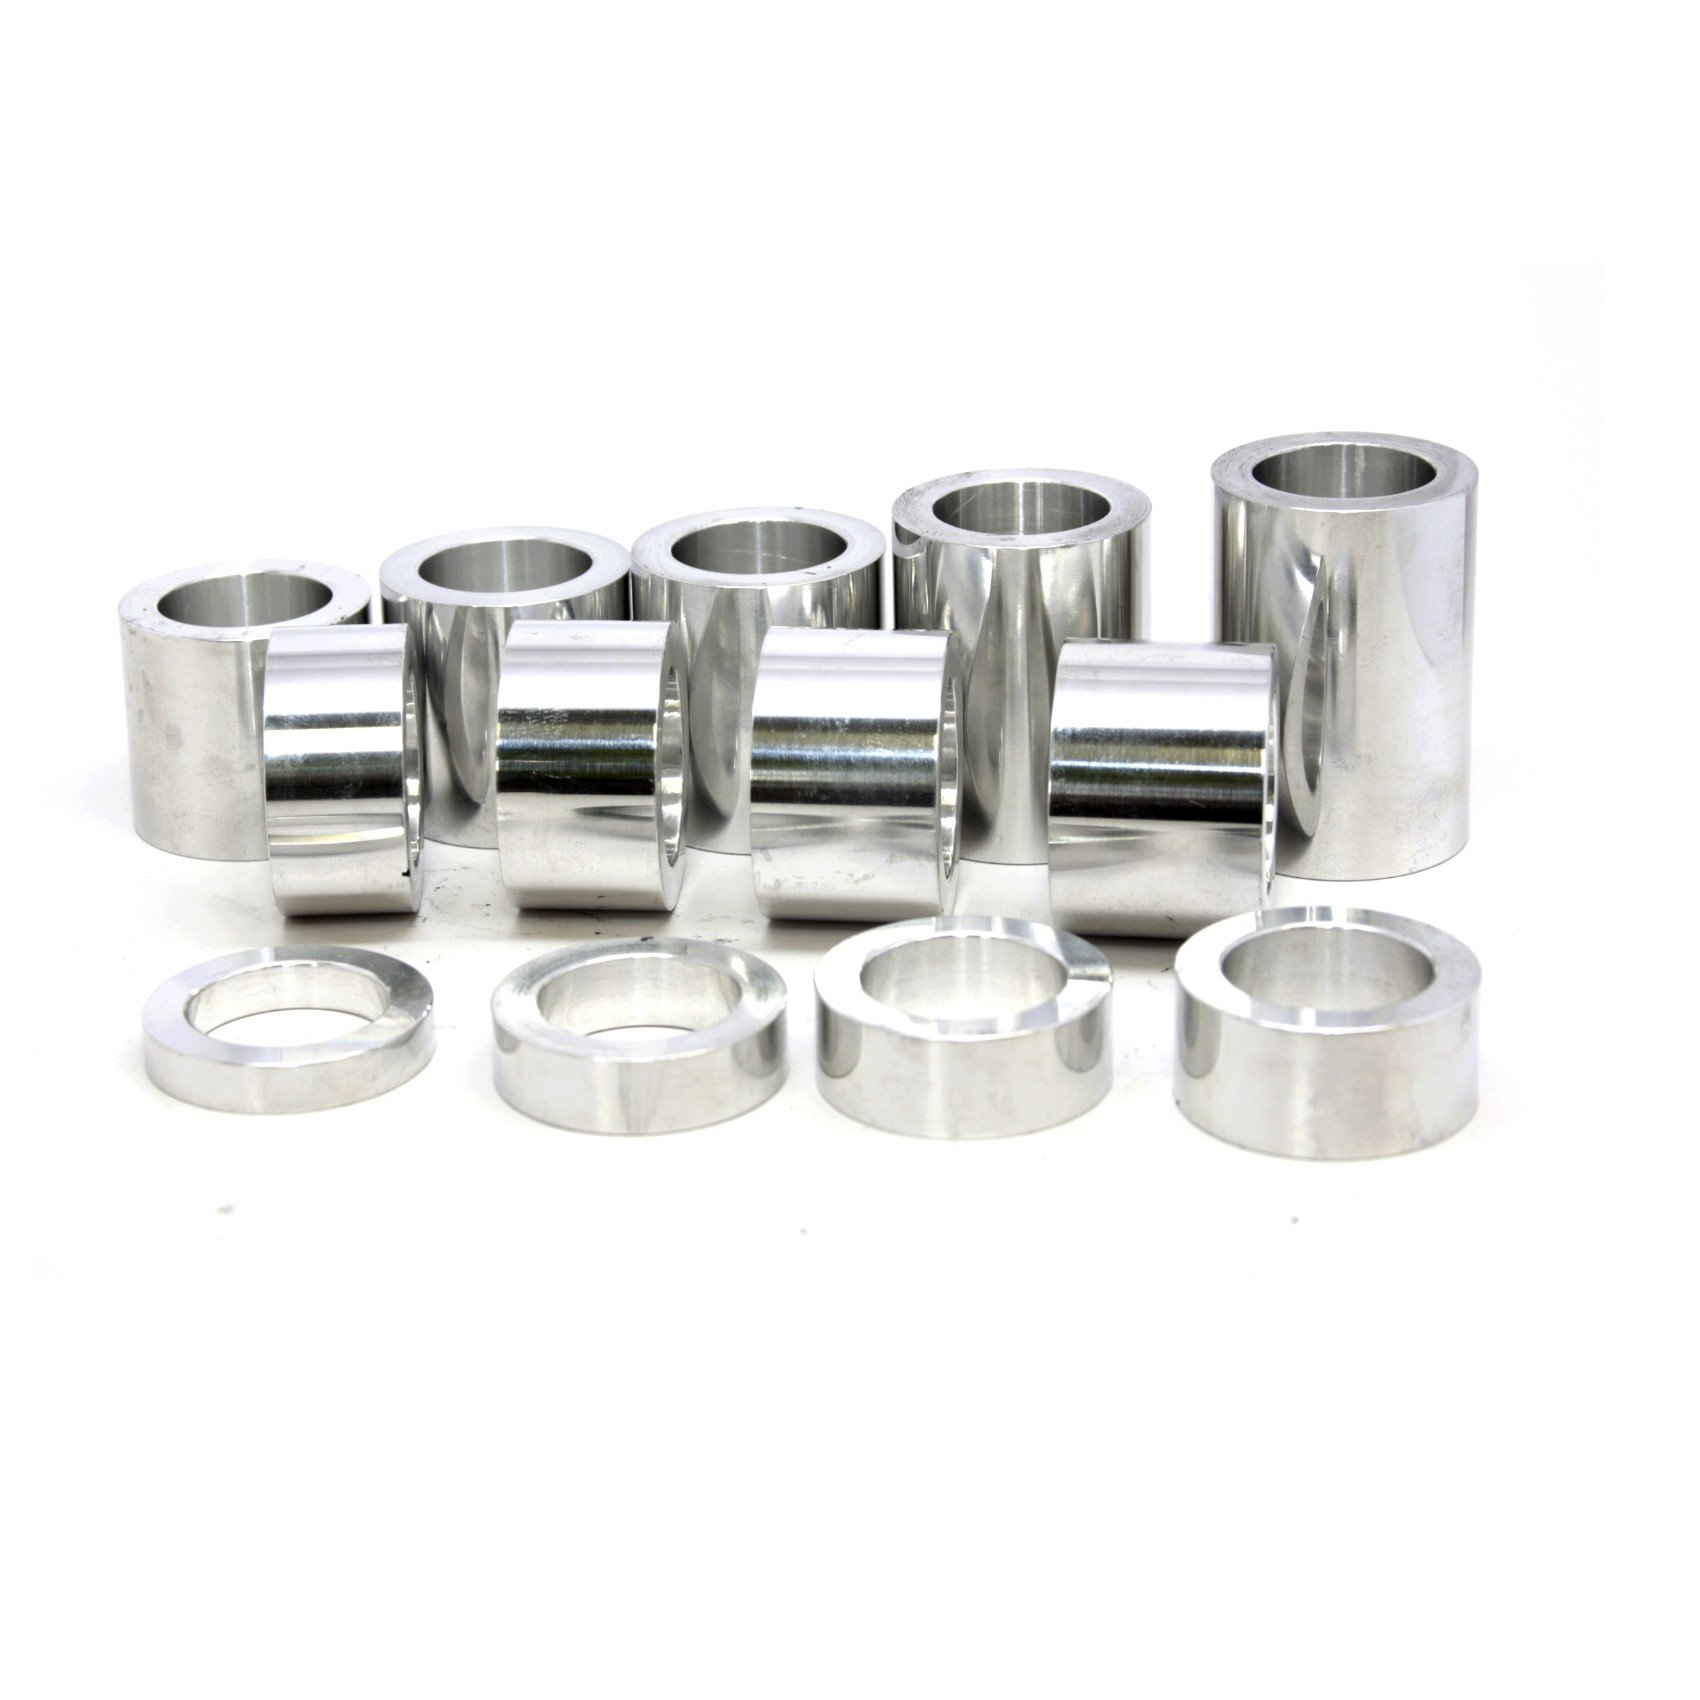 Wheel Axle Spacer Kit I.D. 3/4'' (0.75) - O.D. 1-1/4'' (1.25) - 13 Spacers Polished